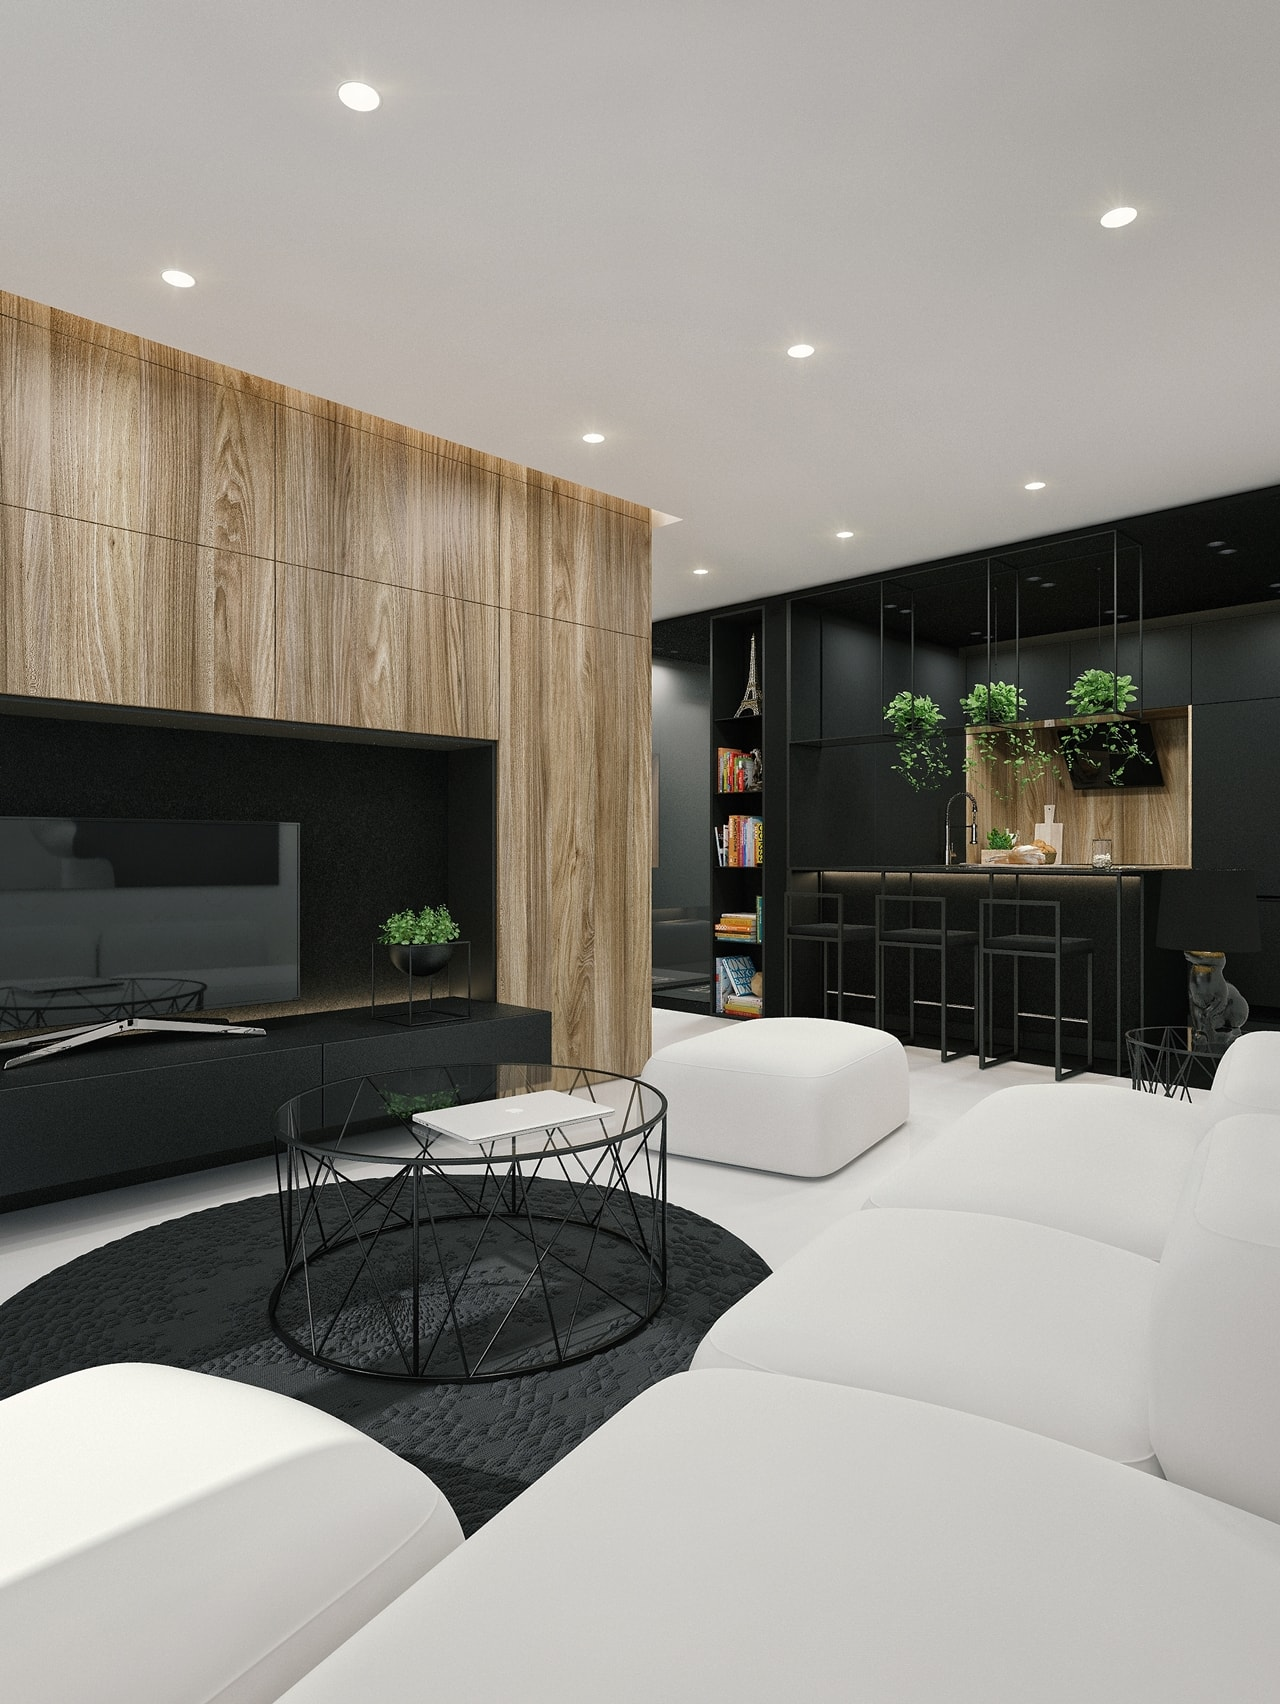 Room Design Interior: Black And White Interior Design Ideas: Modern Apartment By